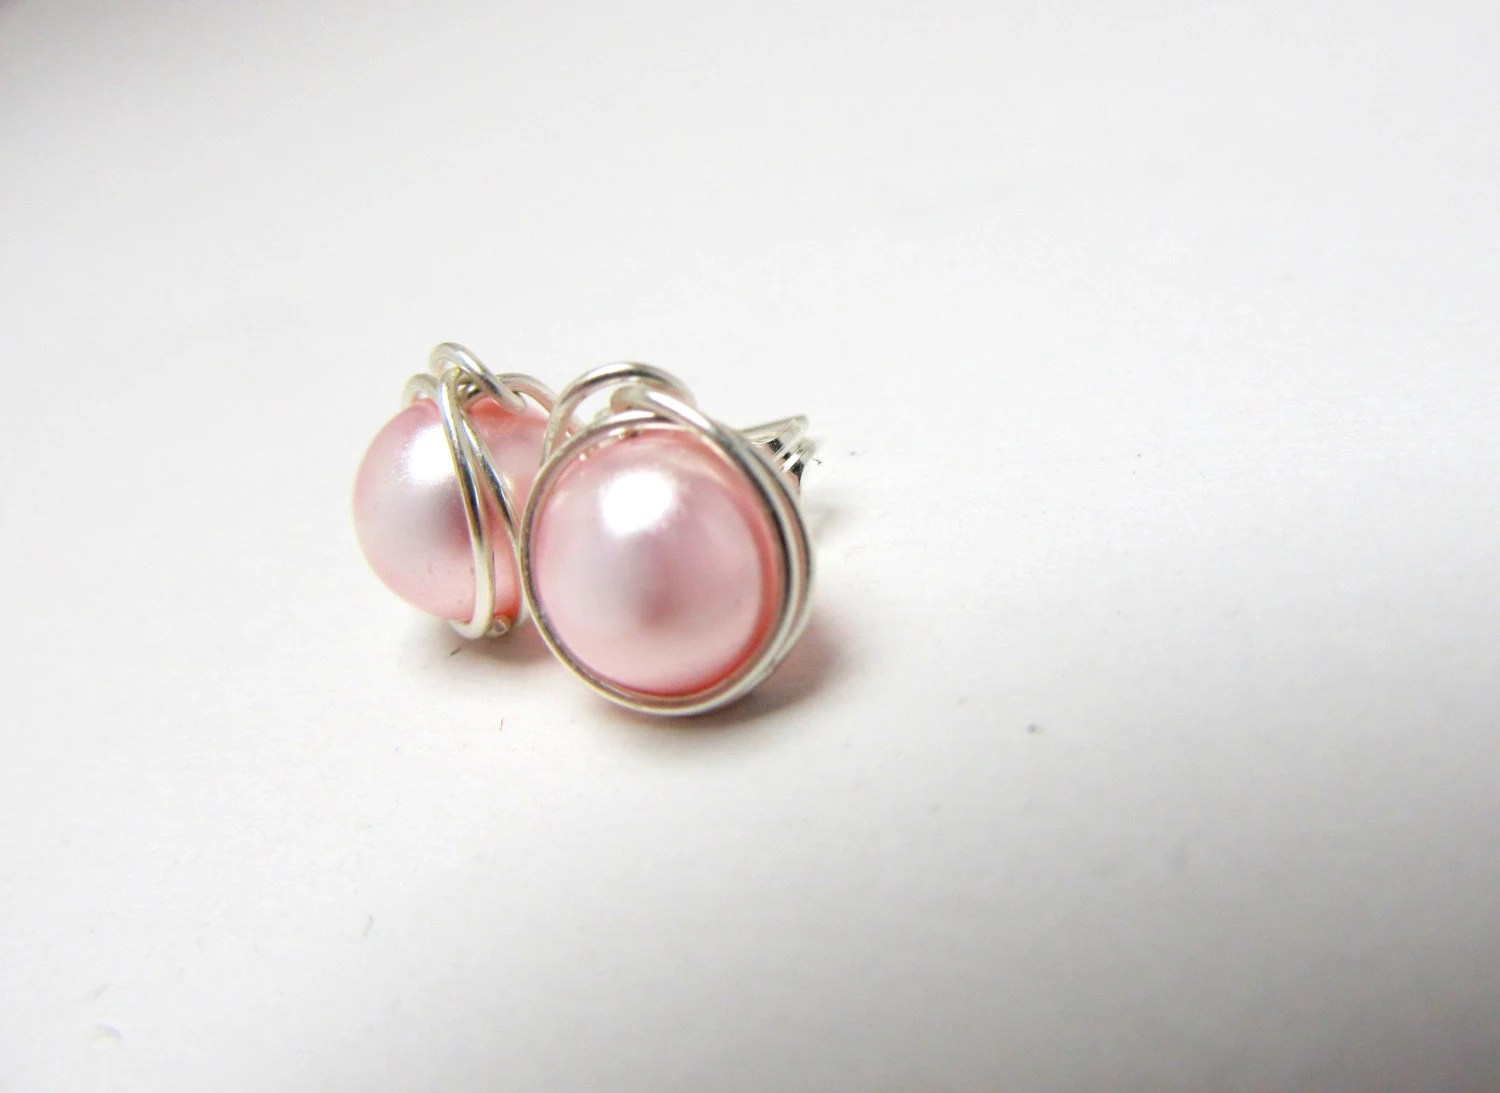 Items similar to Pale Pink Pearl Earrings, Sterling Silver